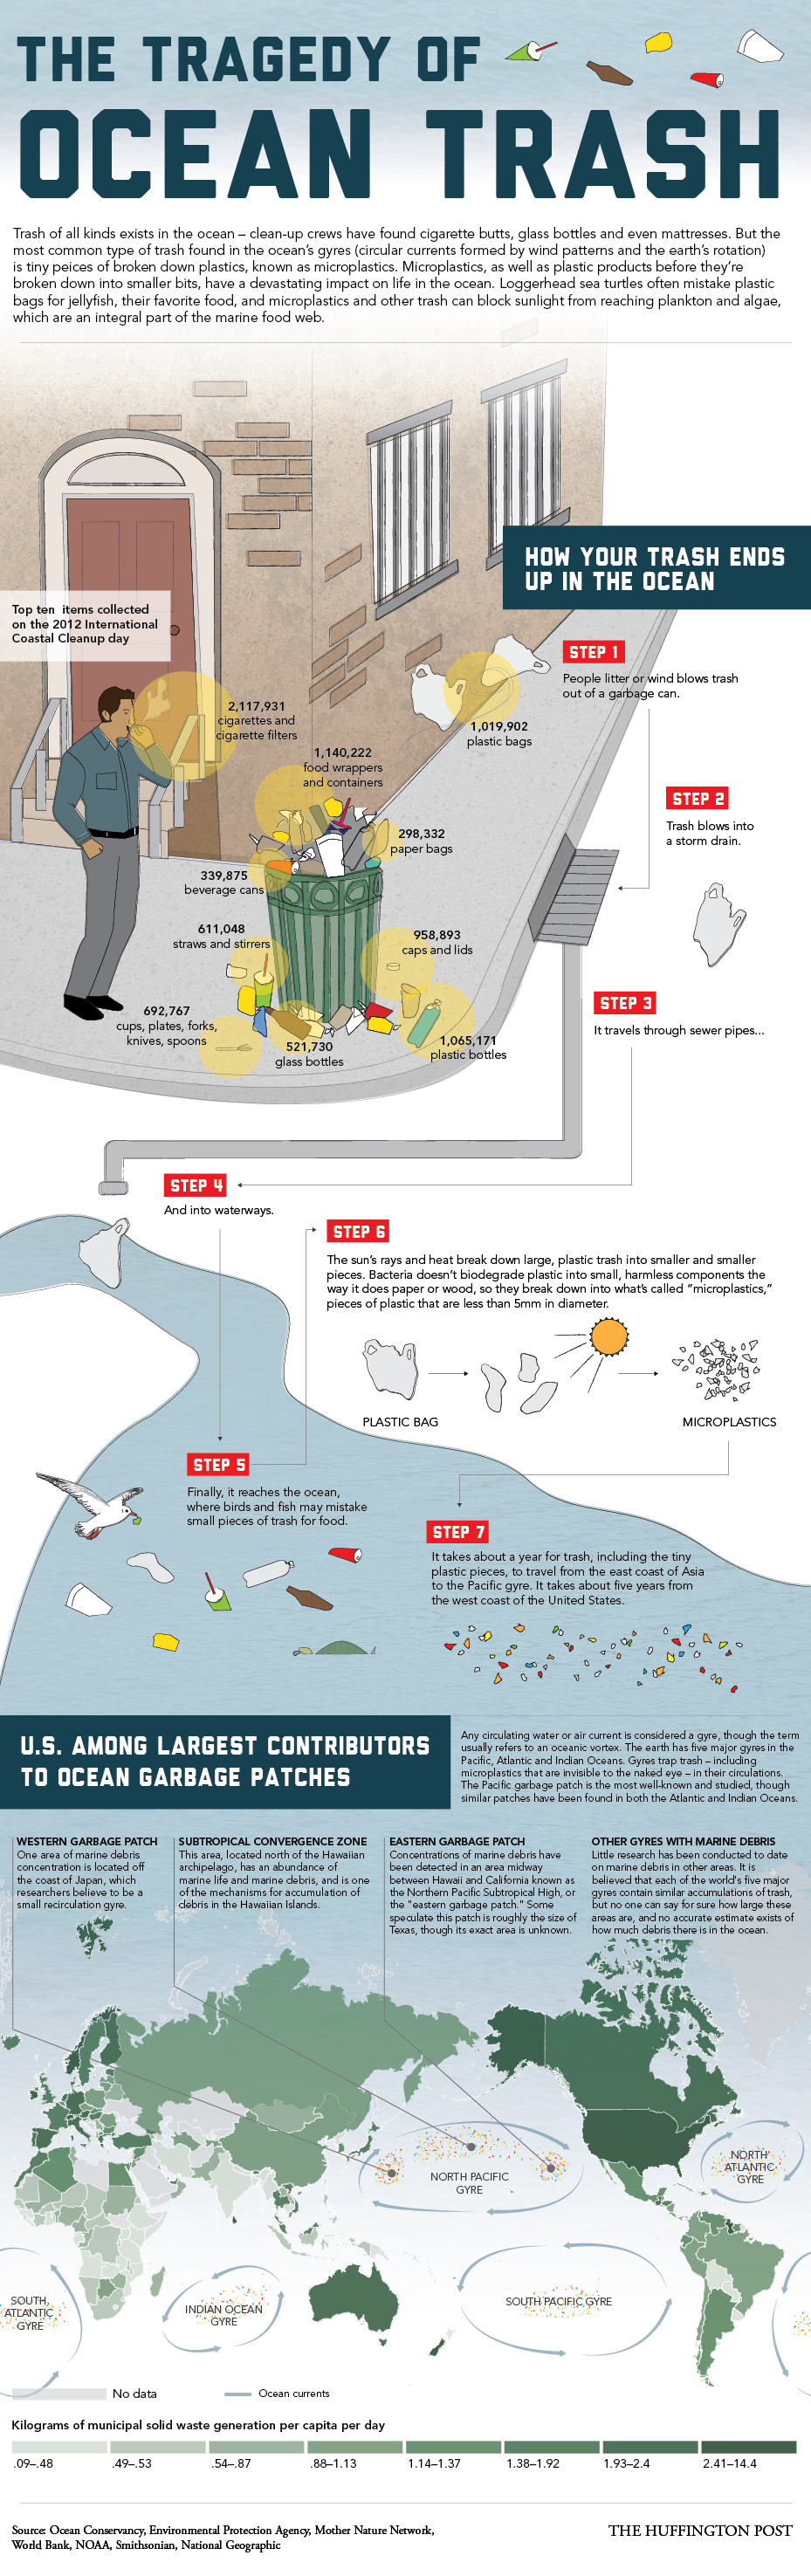 This Is How Your Plastic Bag Ends Up In Massive Ocean Garbage Patches